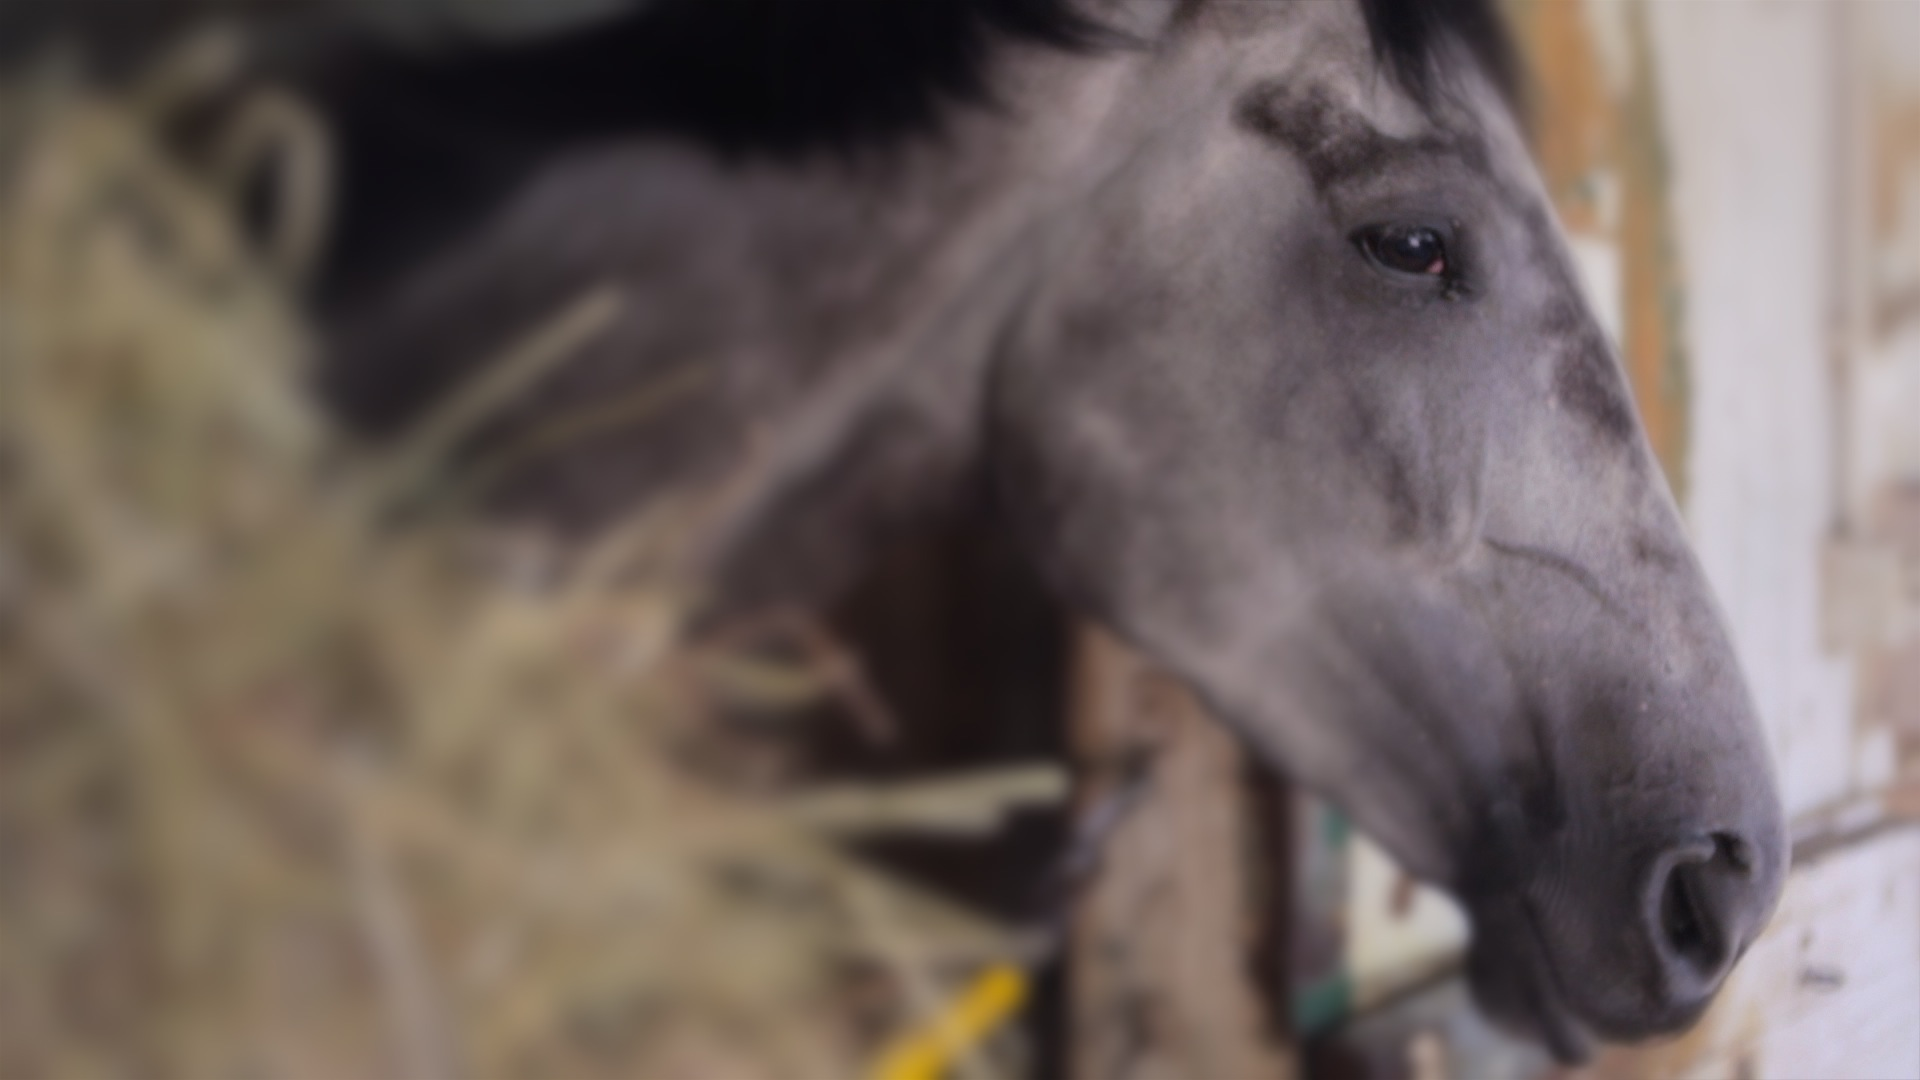 Centrina, one of the oldest horses at Barn 47 and quite a beauty.